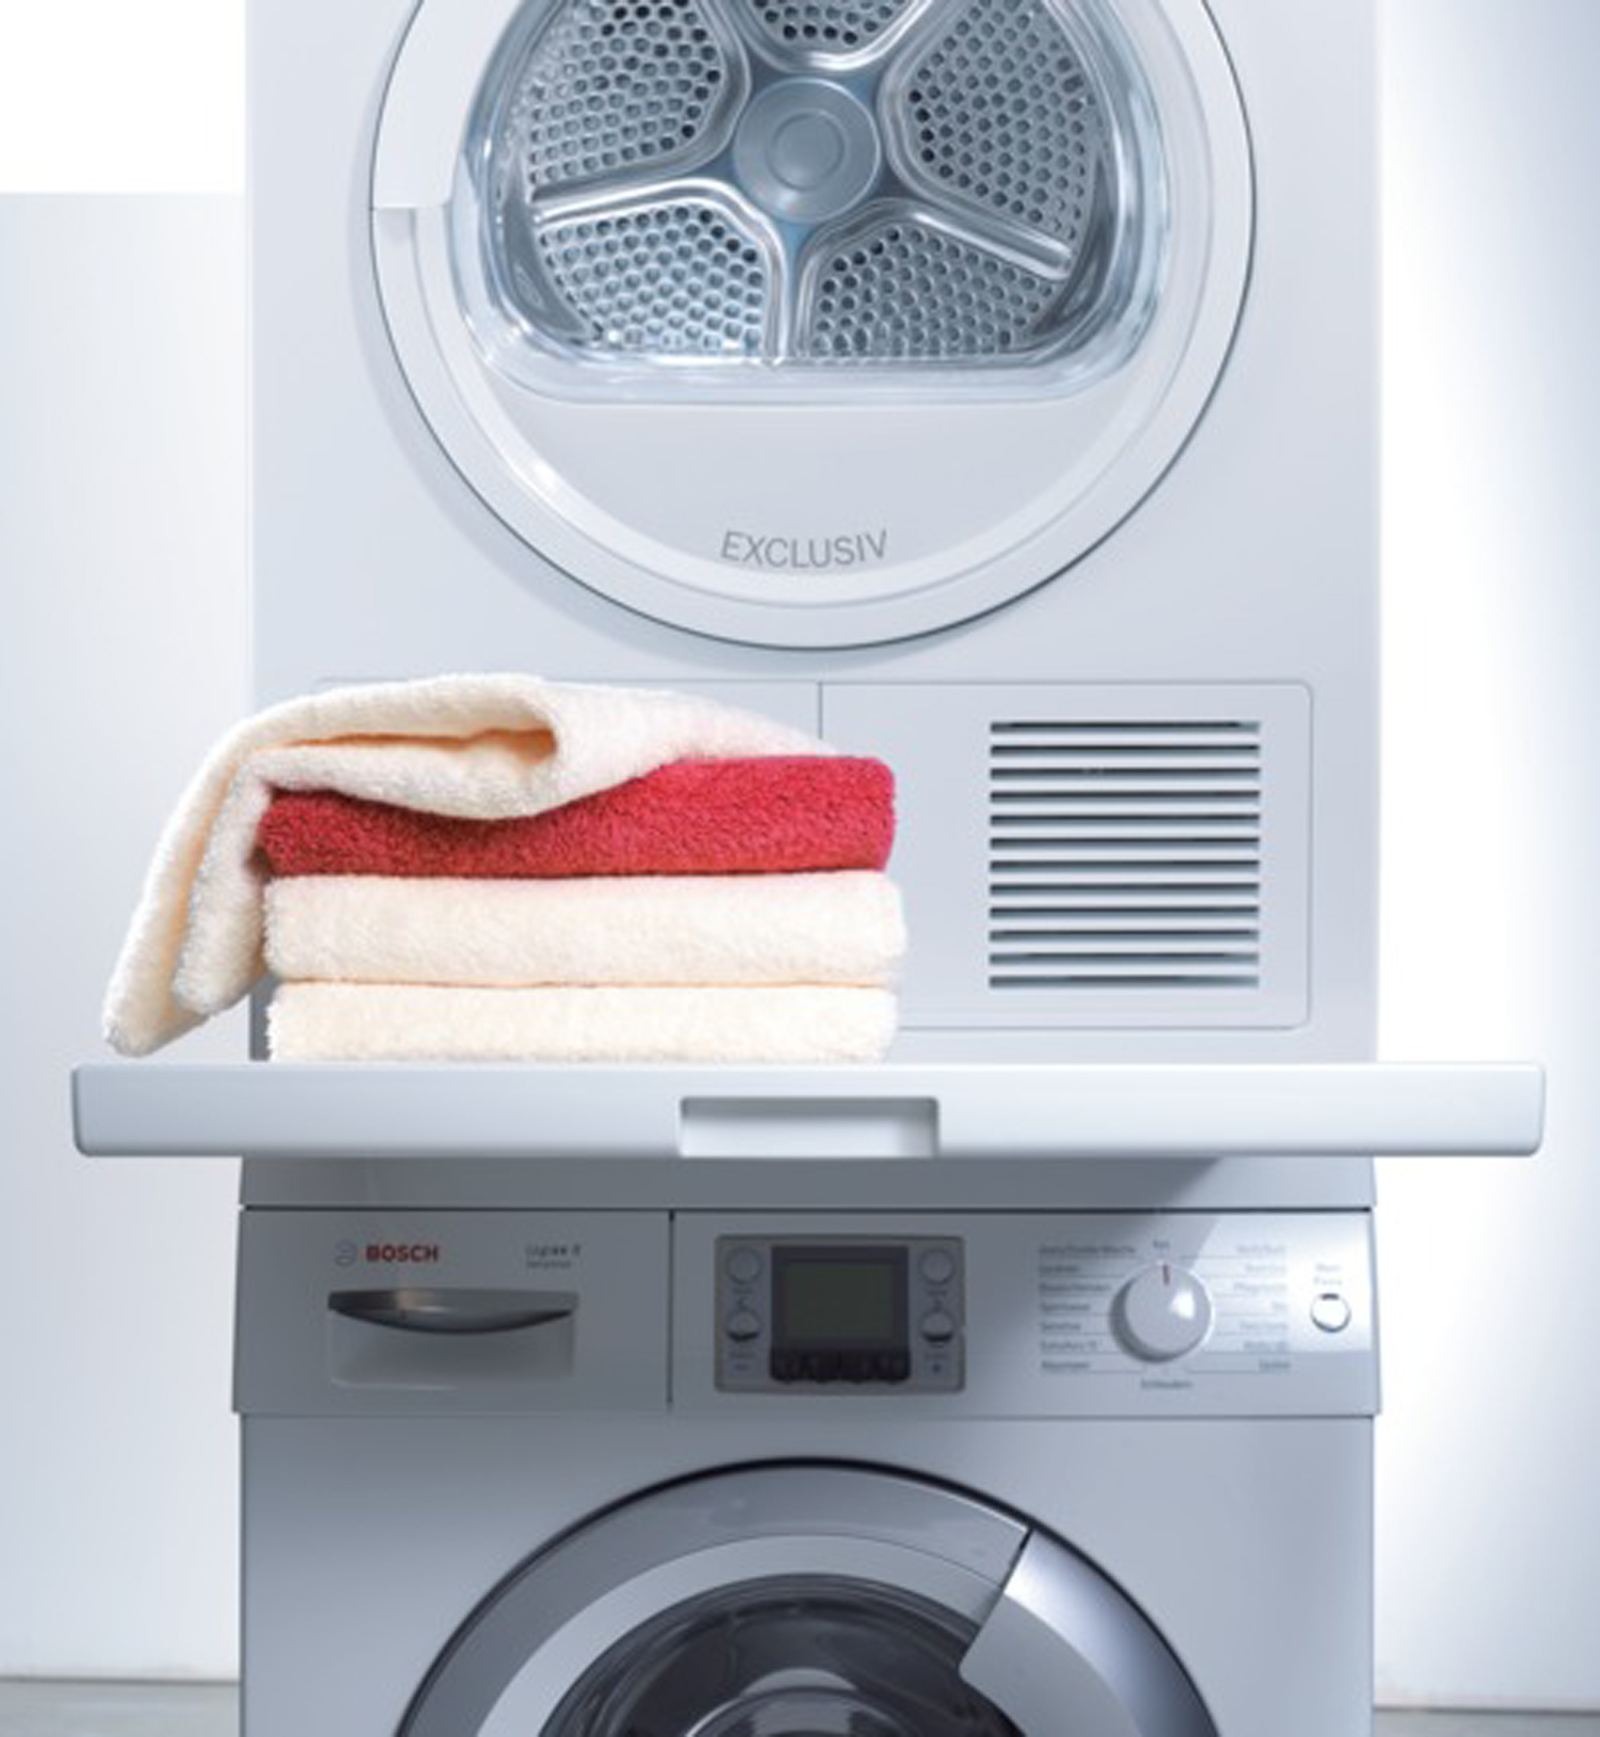 Bosch Washing Machine Stackable bosch wtz11400 laundry stacking kit w/ pull-out shelf - white